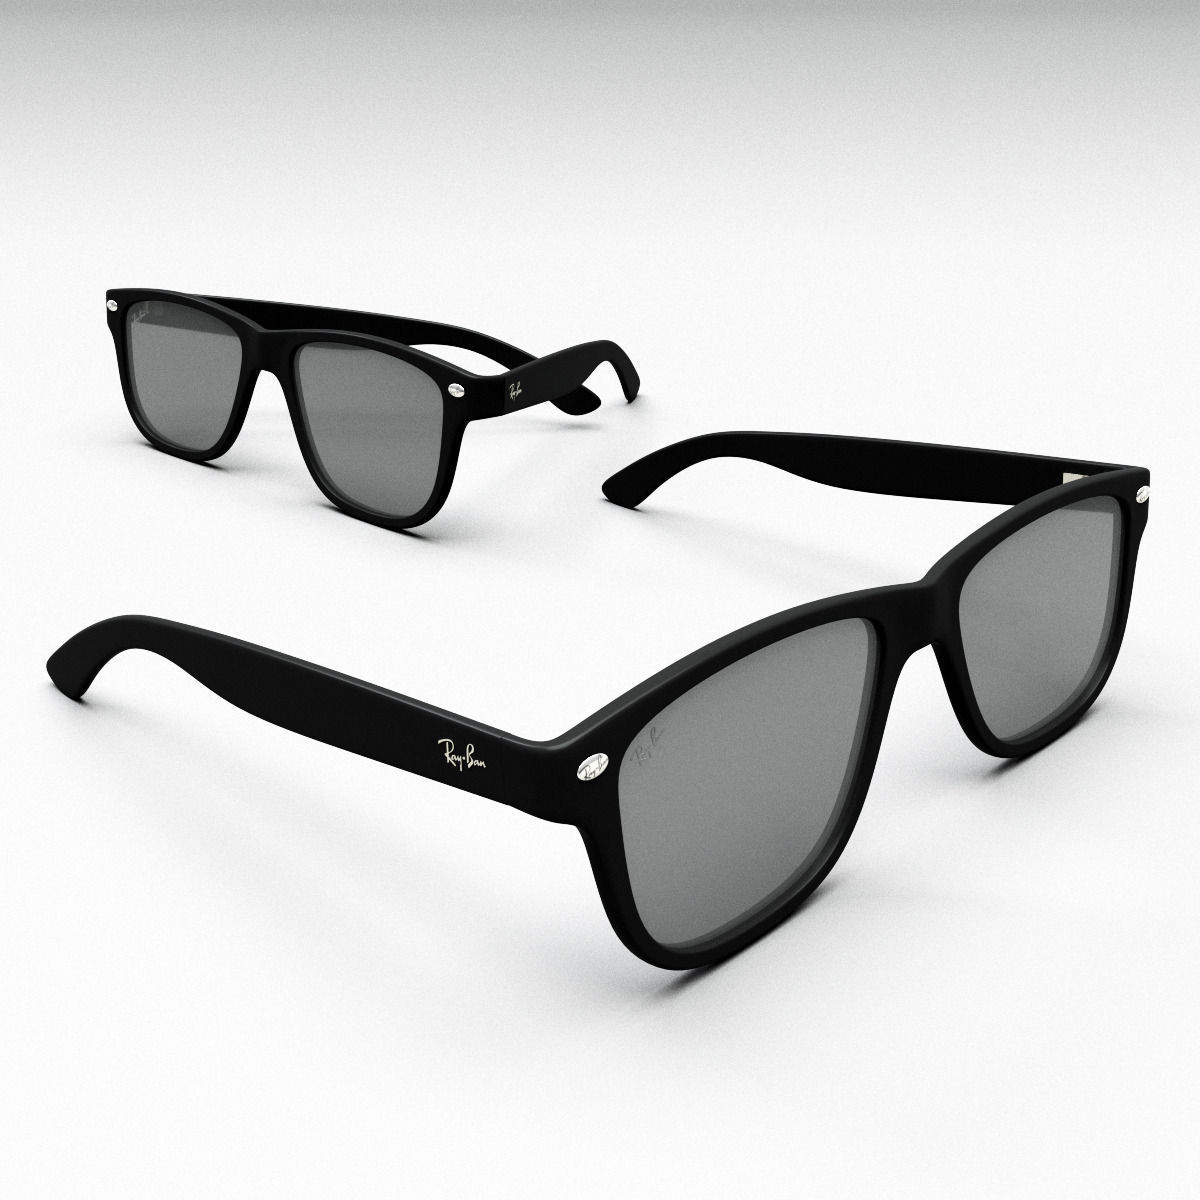 ray ban glasses free 3d model obj mtl. Black Bedroom Furniture Sets. Home Design Ideas